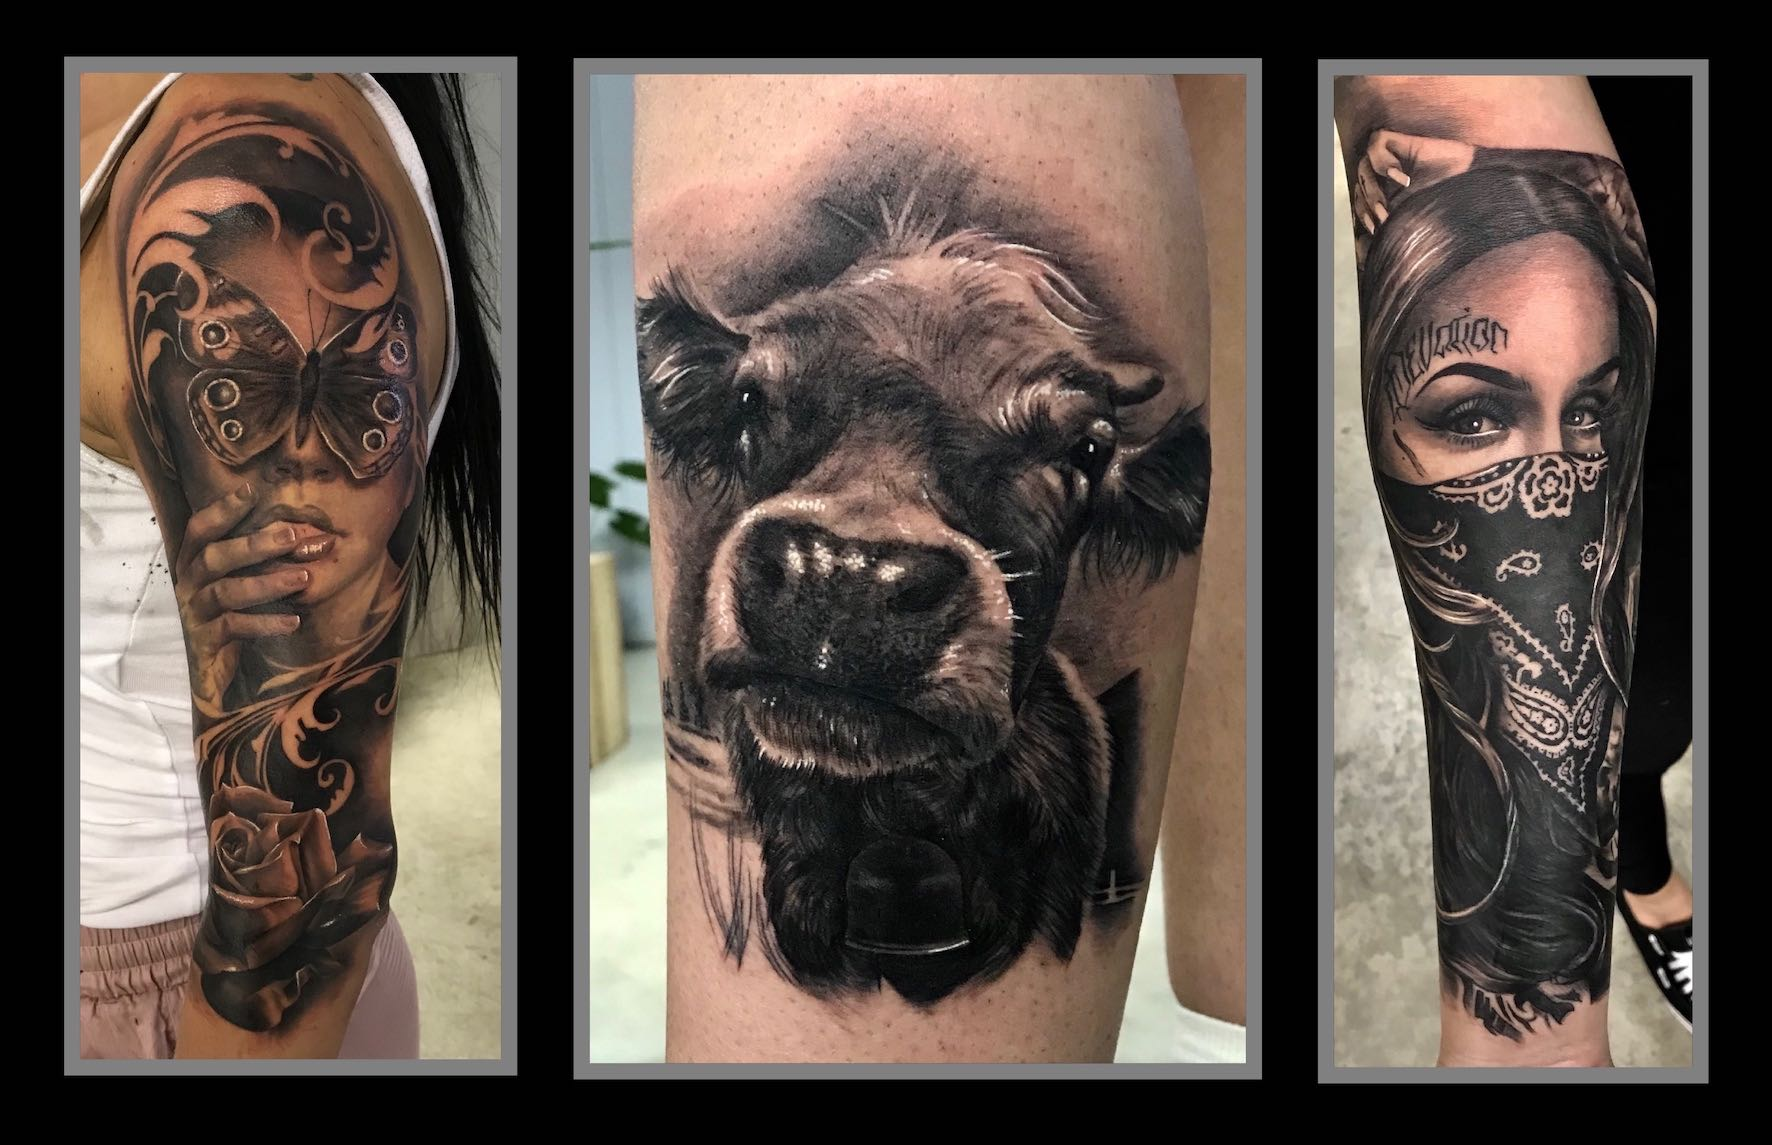 A taste of the black and grey realism tattoos created by Lileen van den Berg